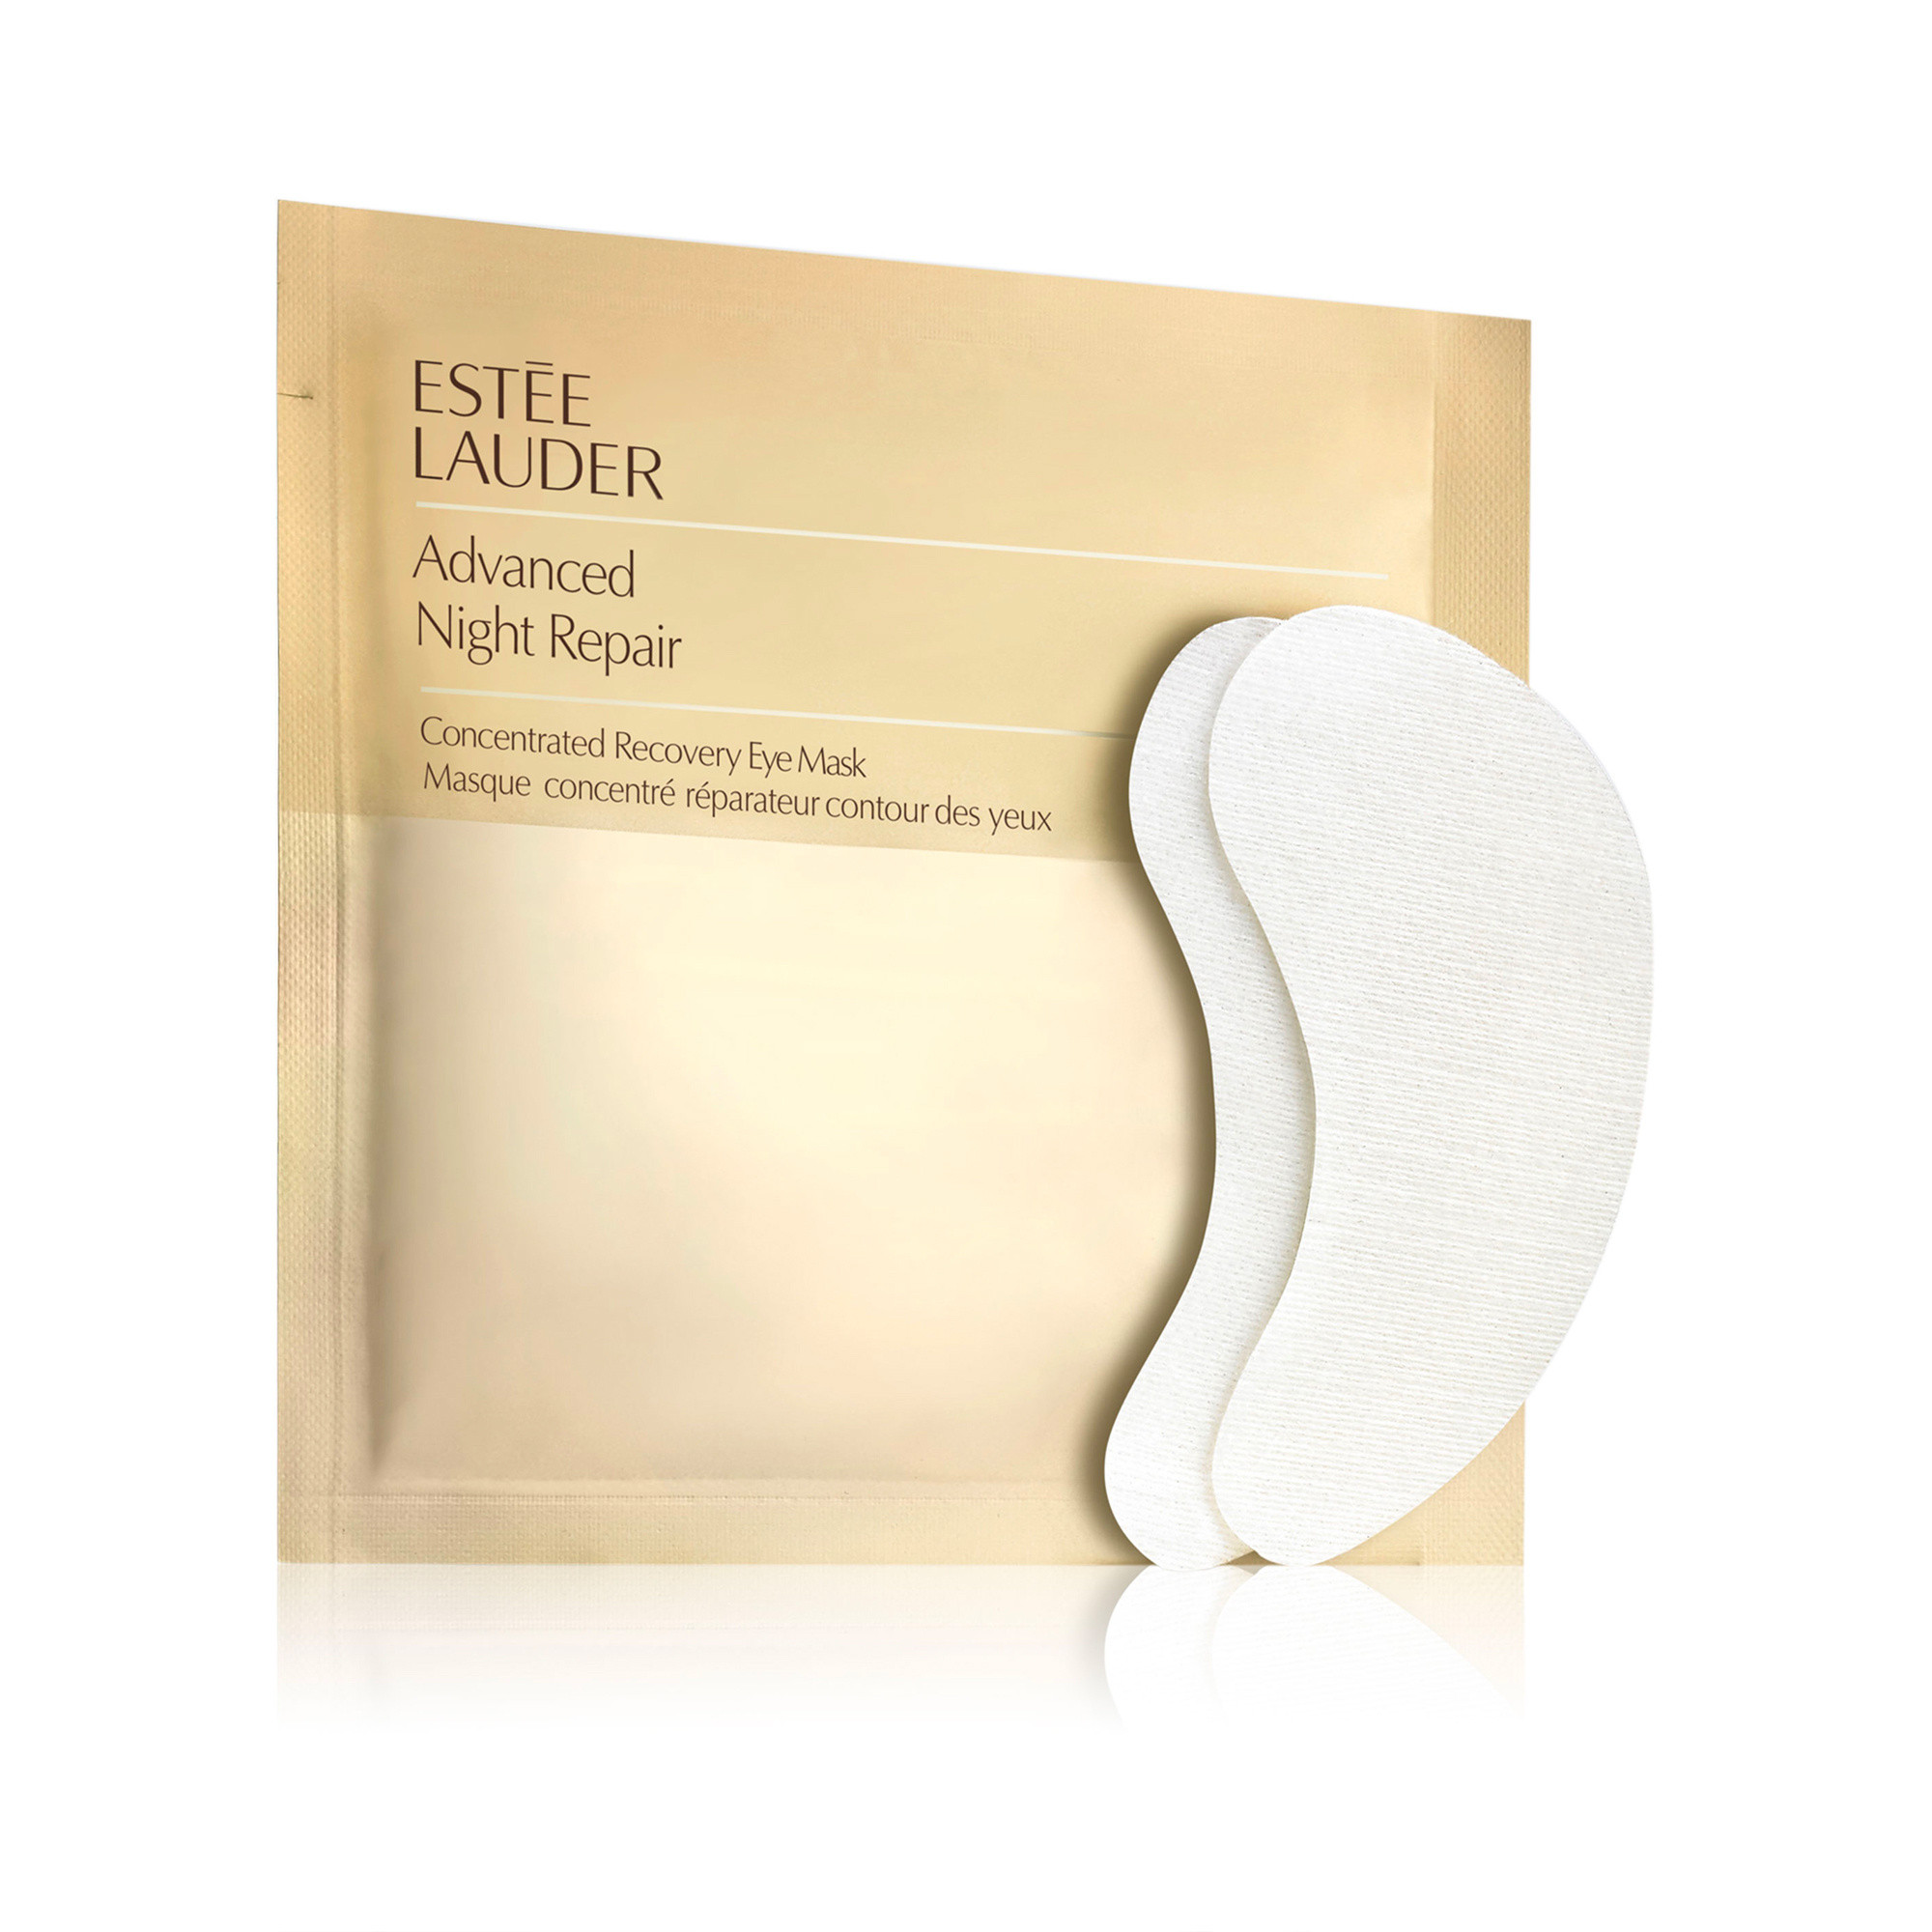 Estée Lauder advanced night repair concentrated recovery powerfoil mask x4  4 pcs, Azzurro, large image number 1